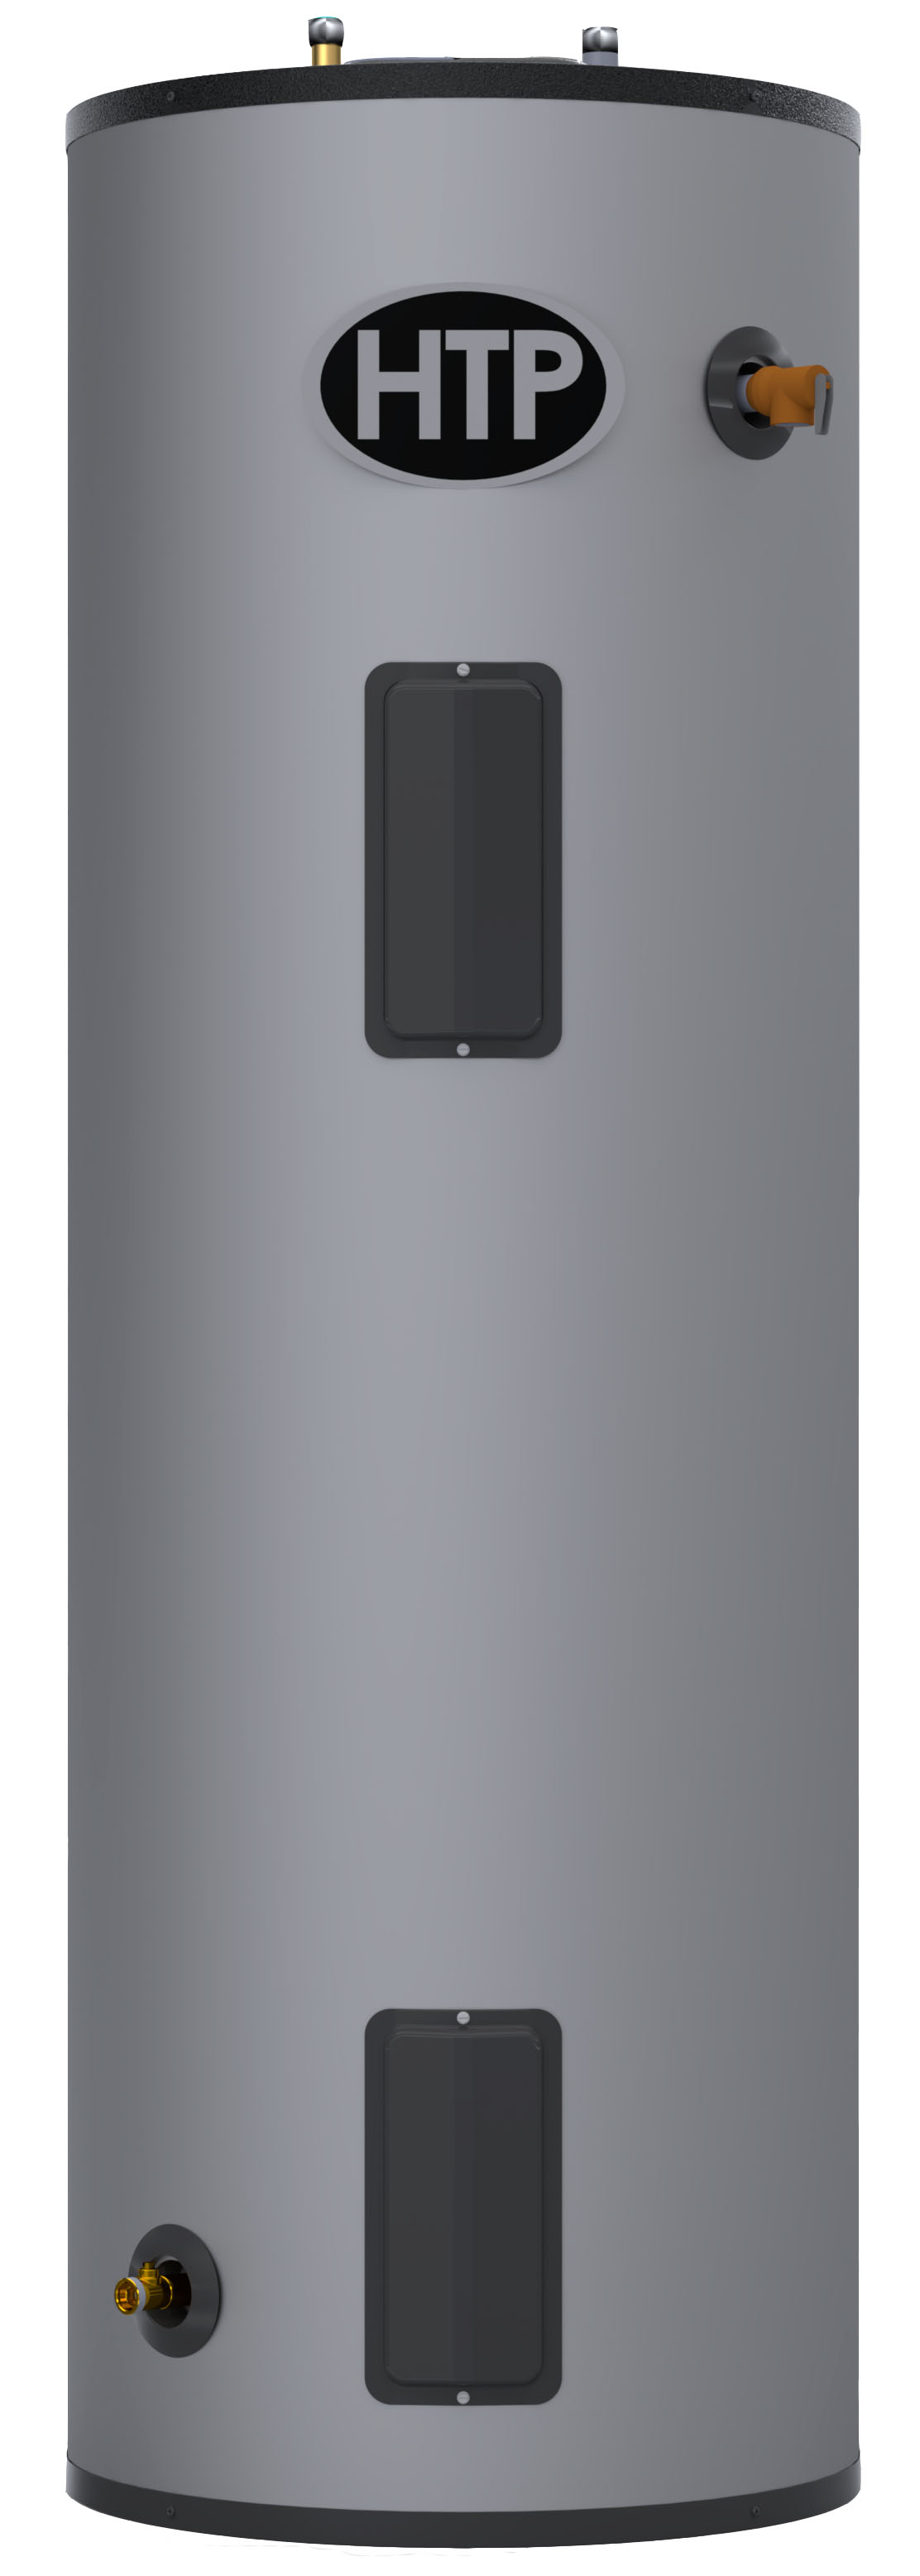 Grid-Enabled Electric Water Heater